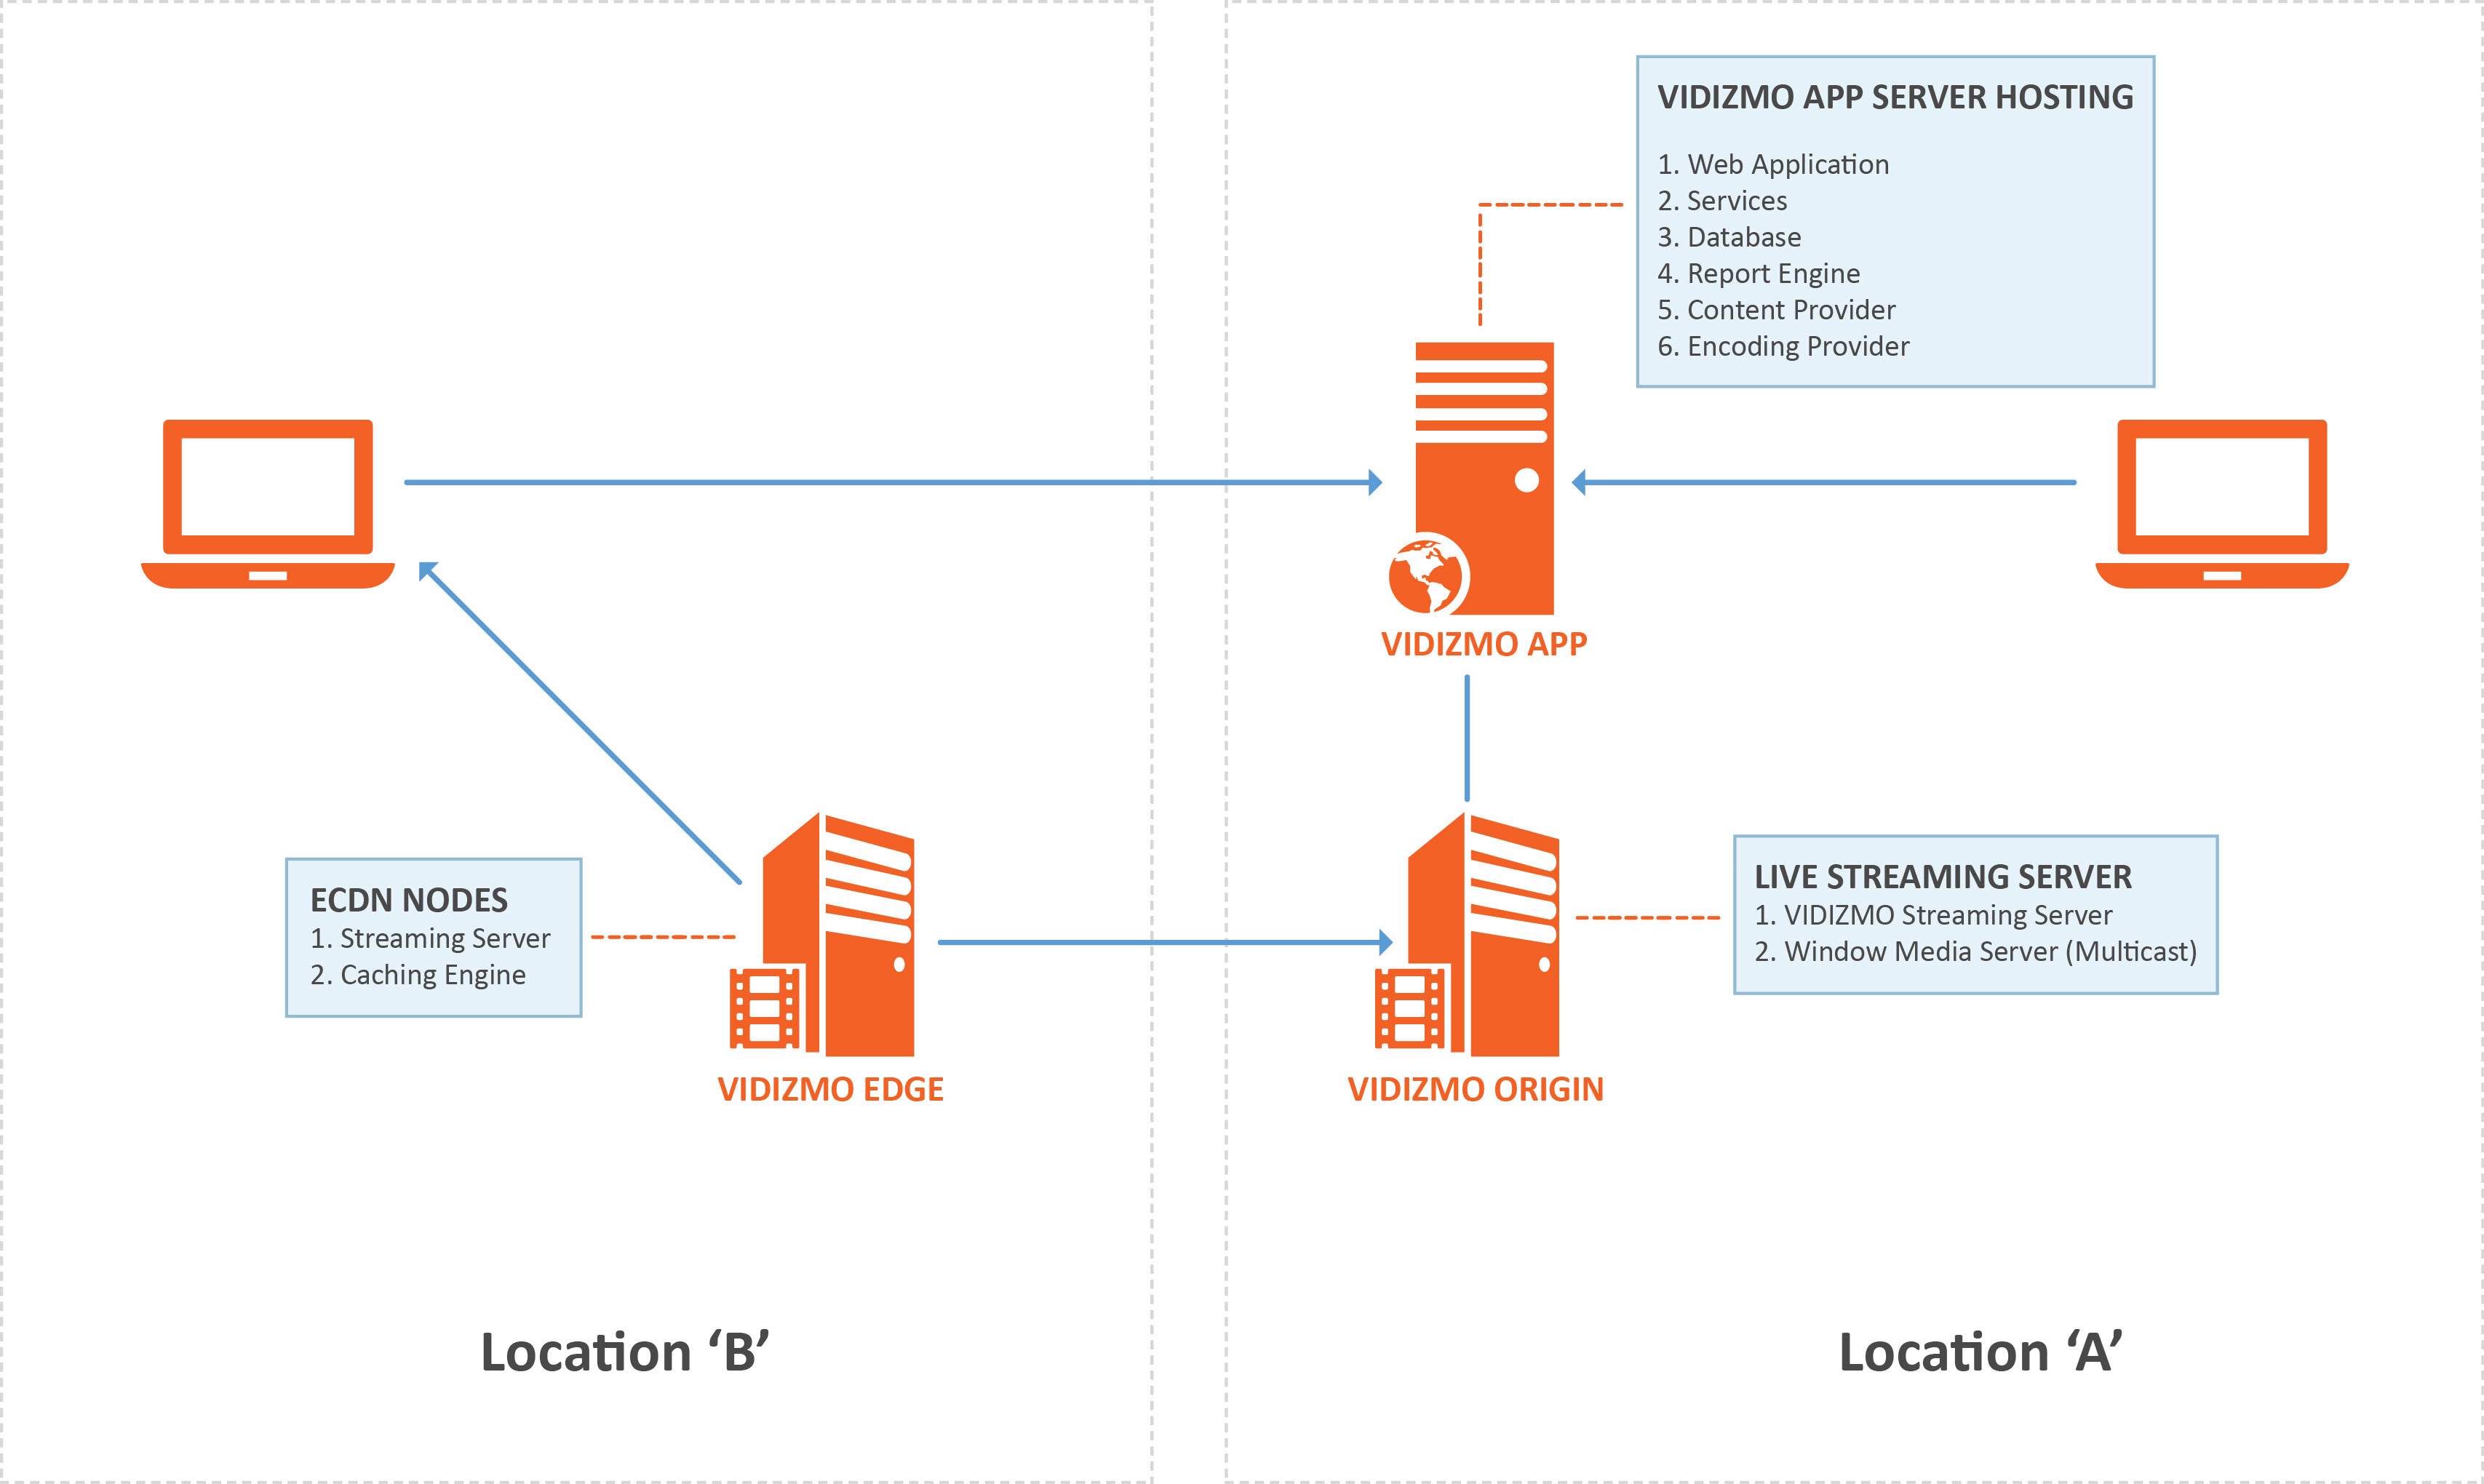 medium resolution of there are a total of 3 vms that make up the entire environment these vms have a different set of components installed to perform different roles